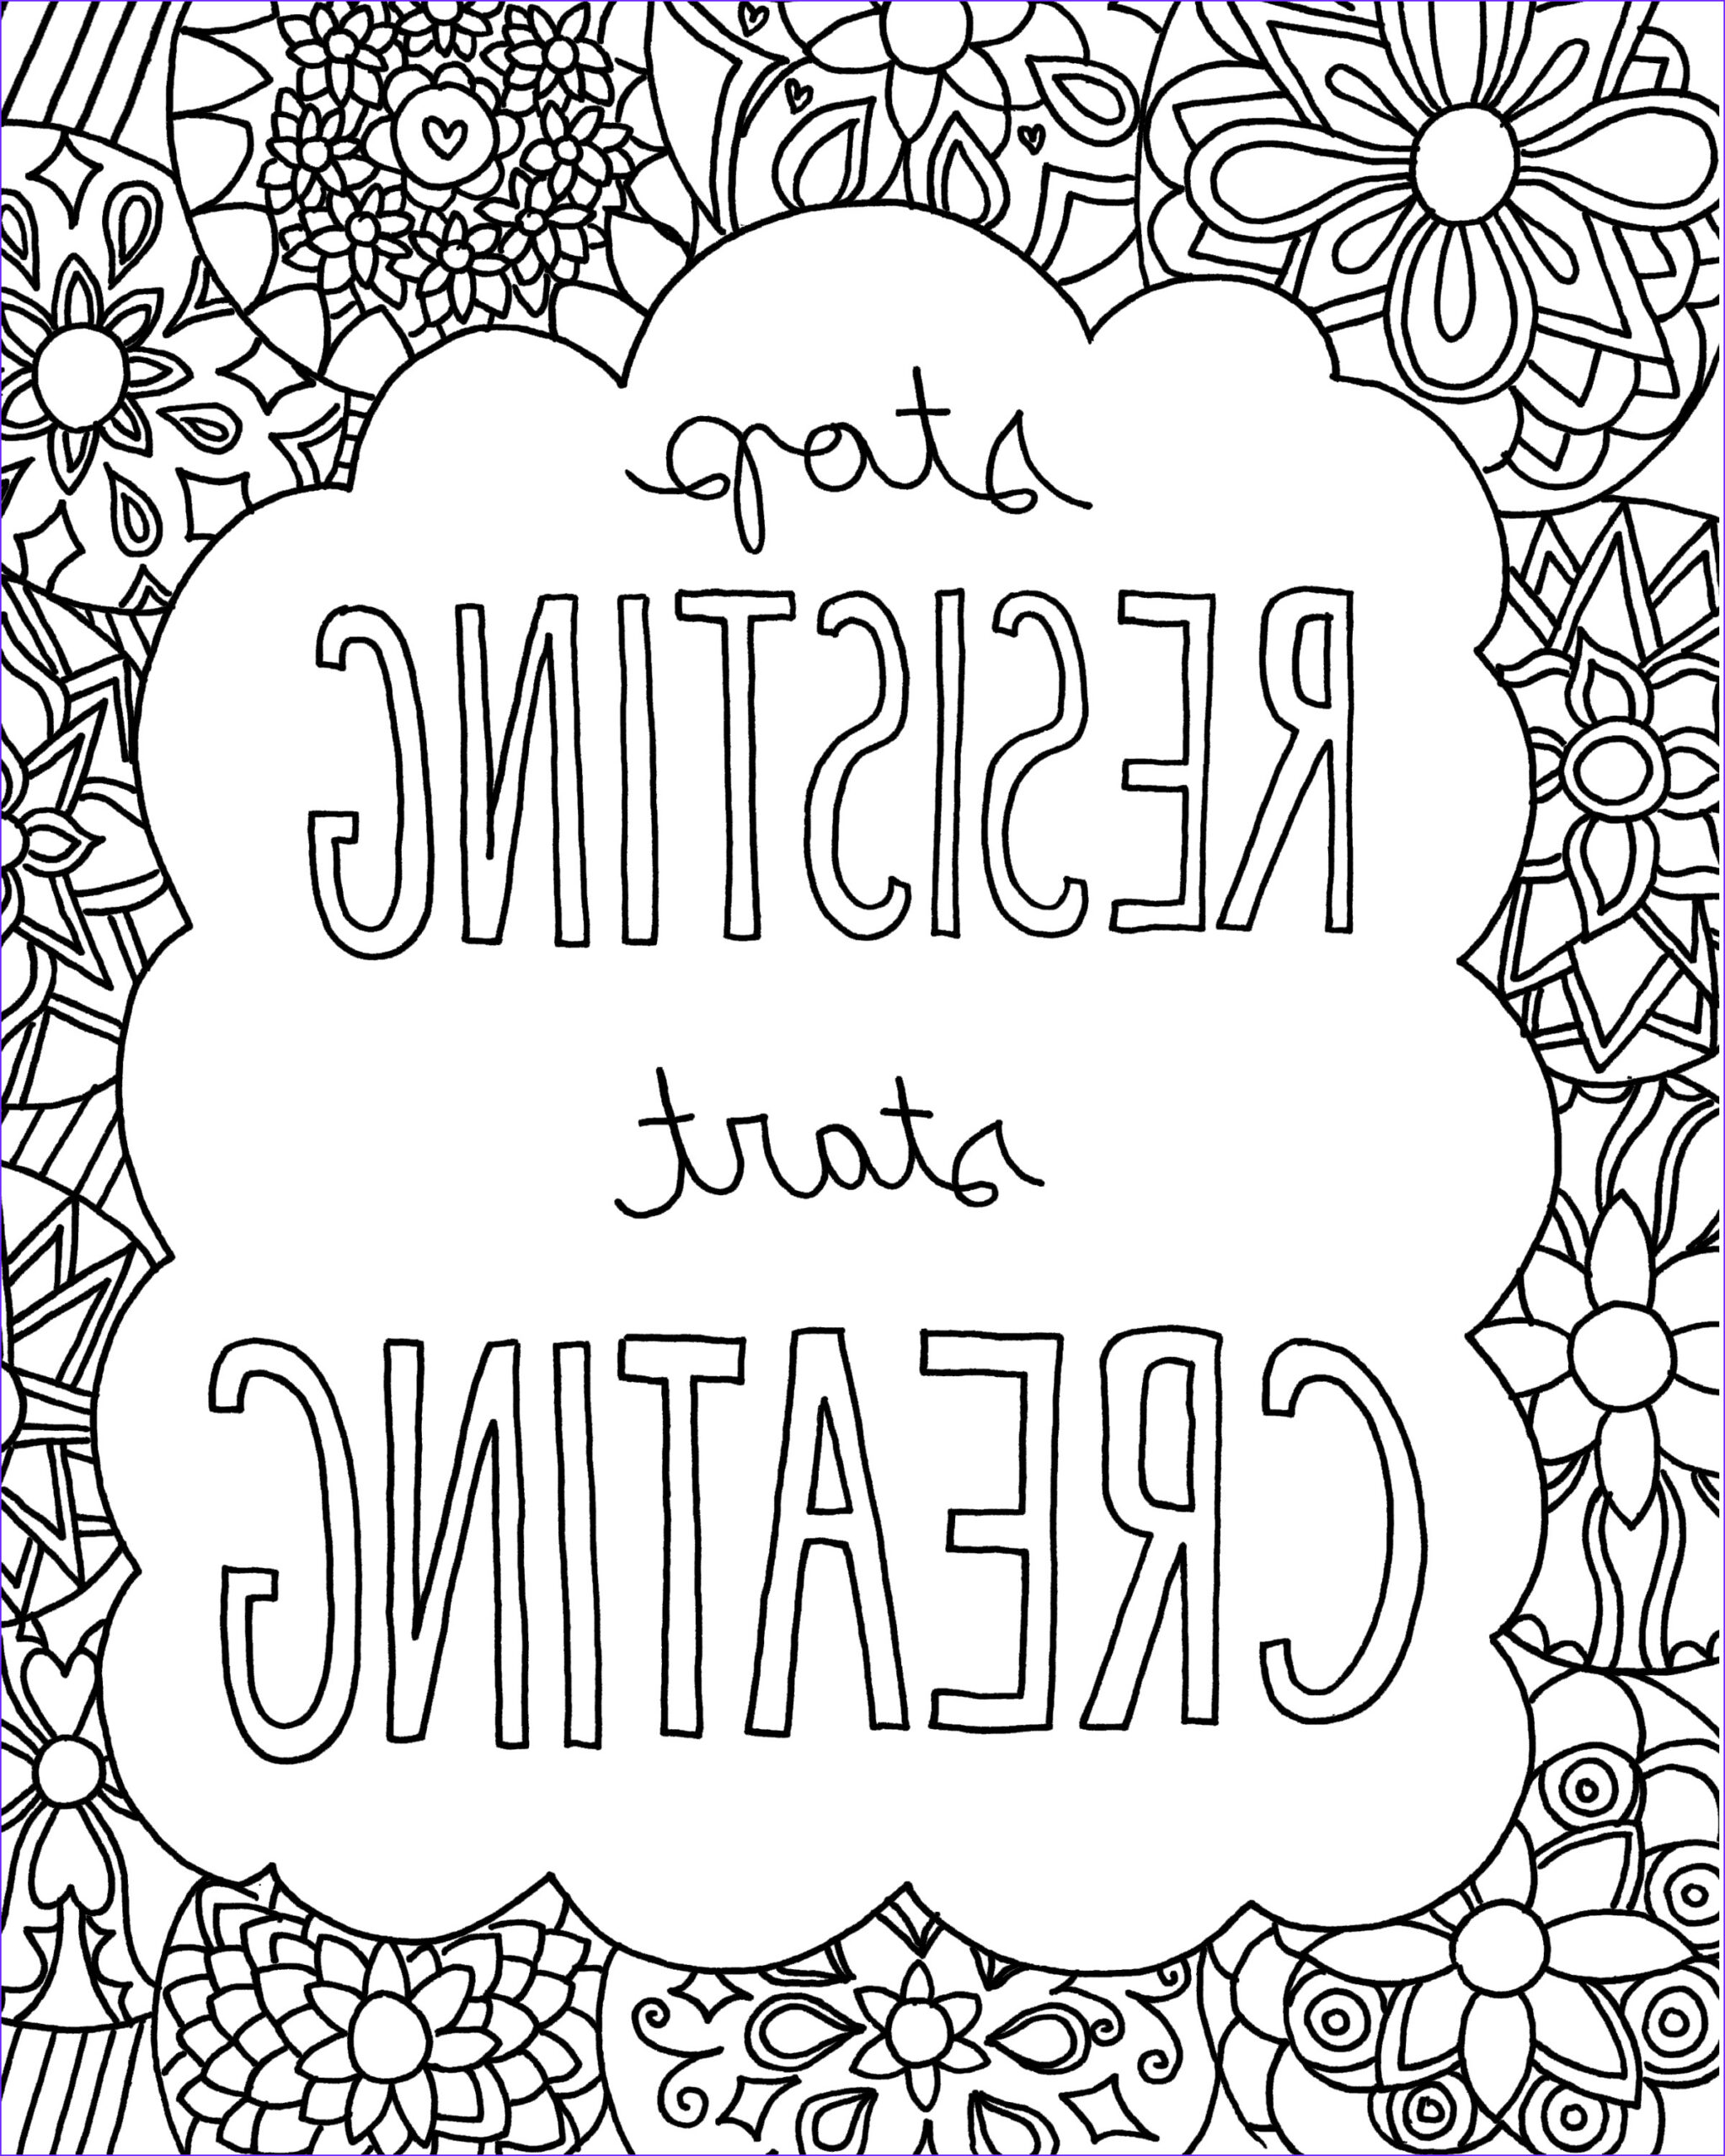 Coloring Images for Adults Elegant Gallery Free Printable Quote Coloring Pages for Grown Ups